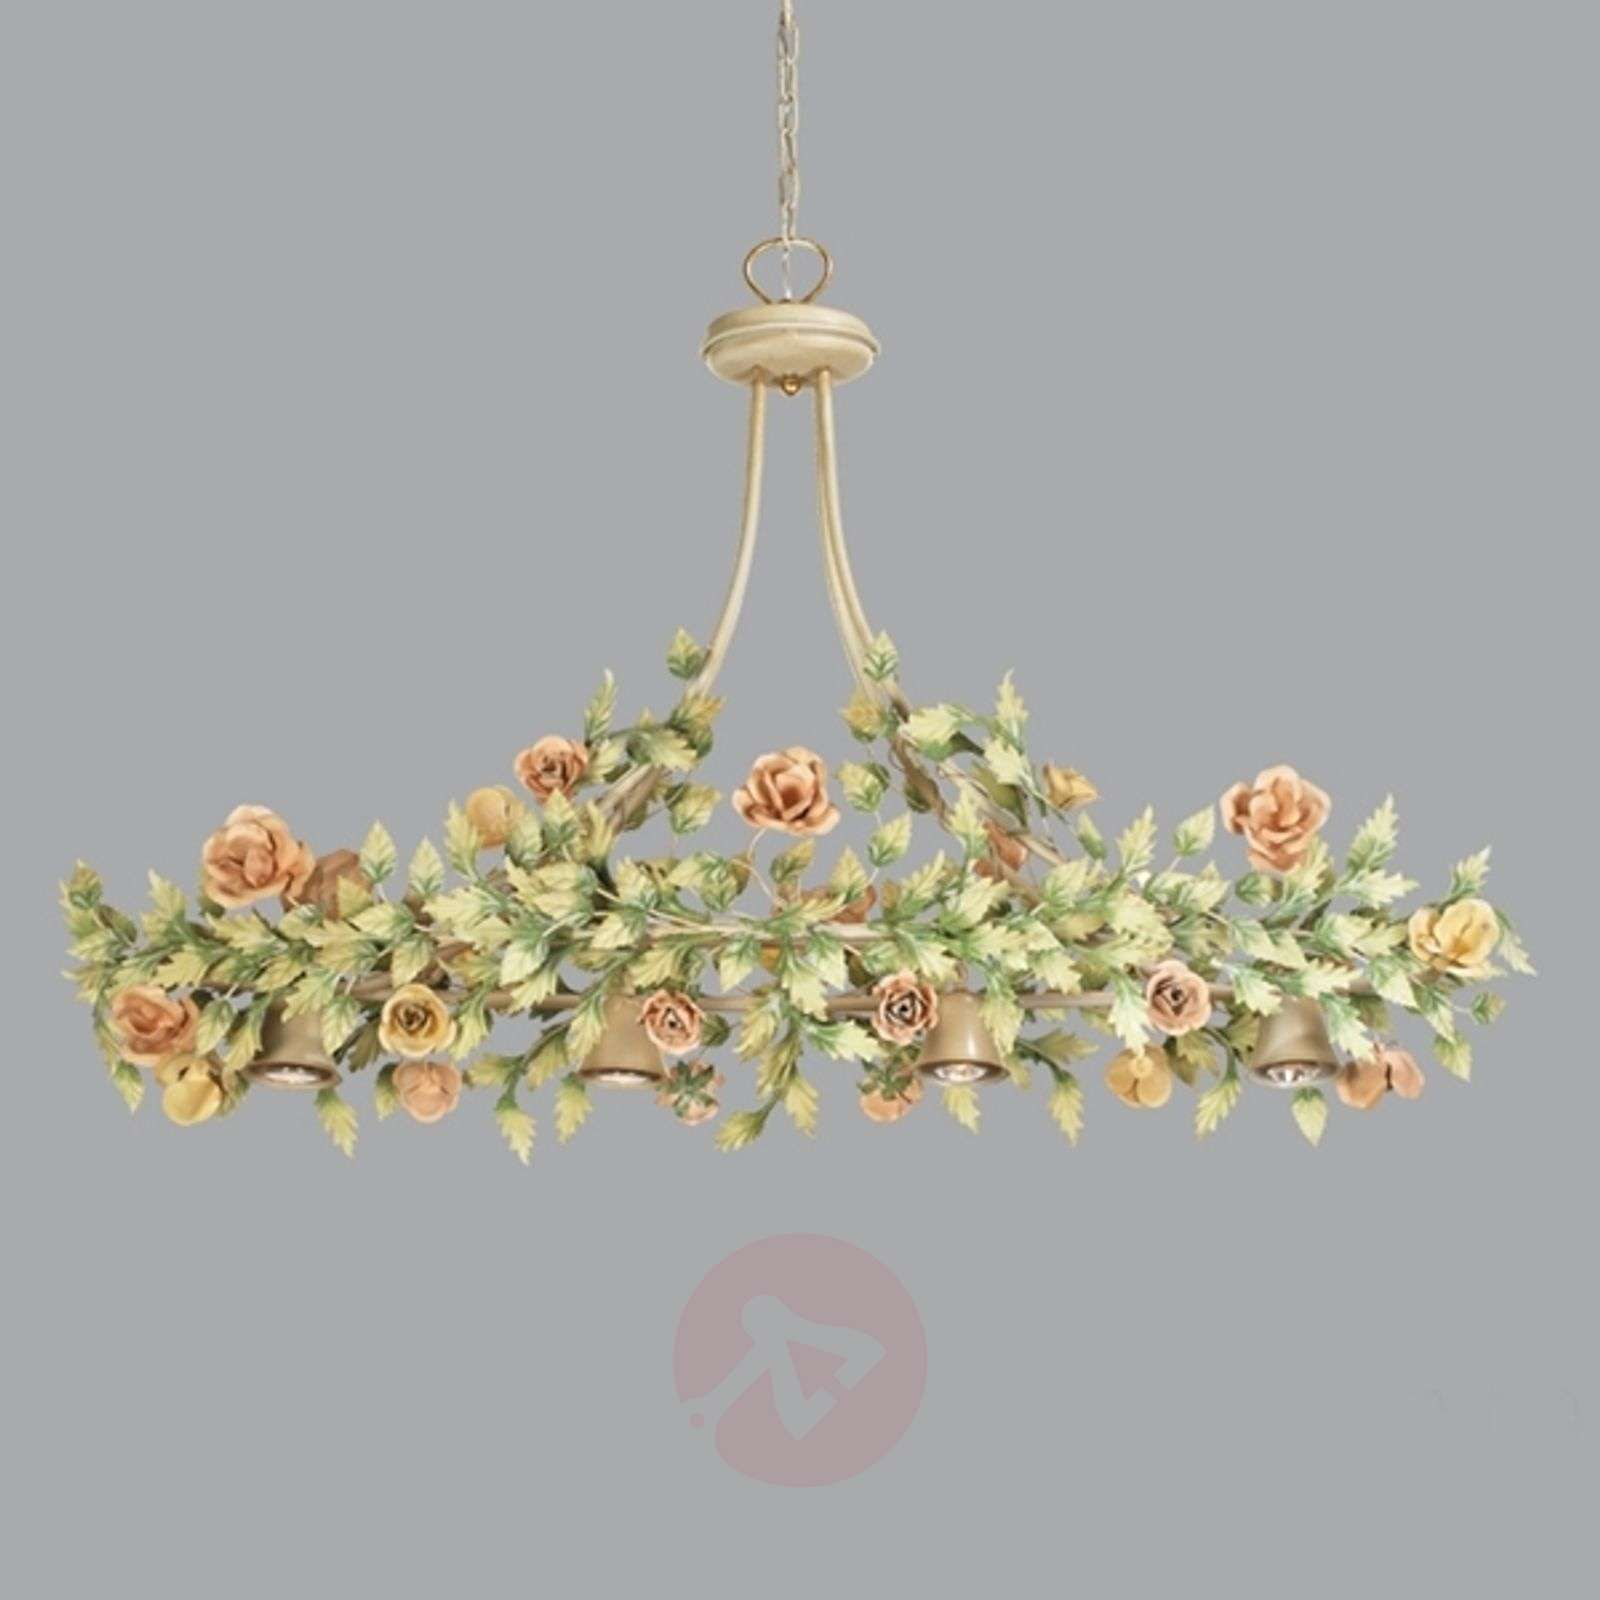 chandelier decor buy gold india products lamp traditional chandeliers rudiano decorative online